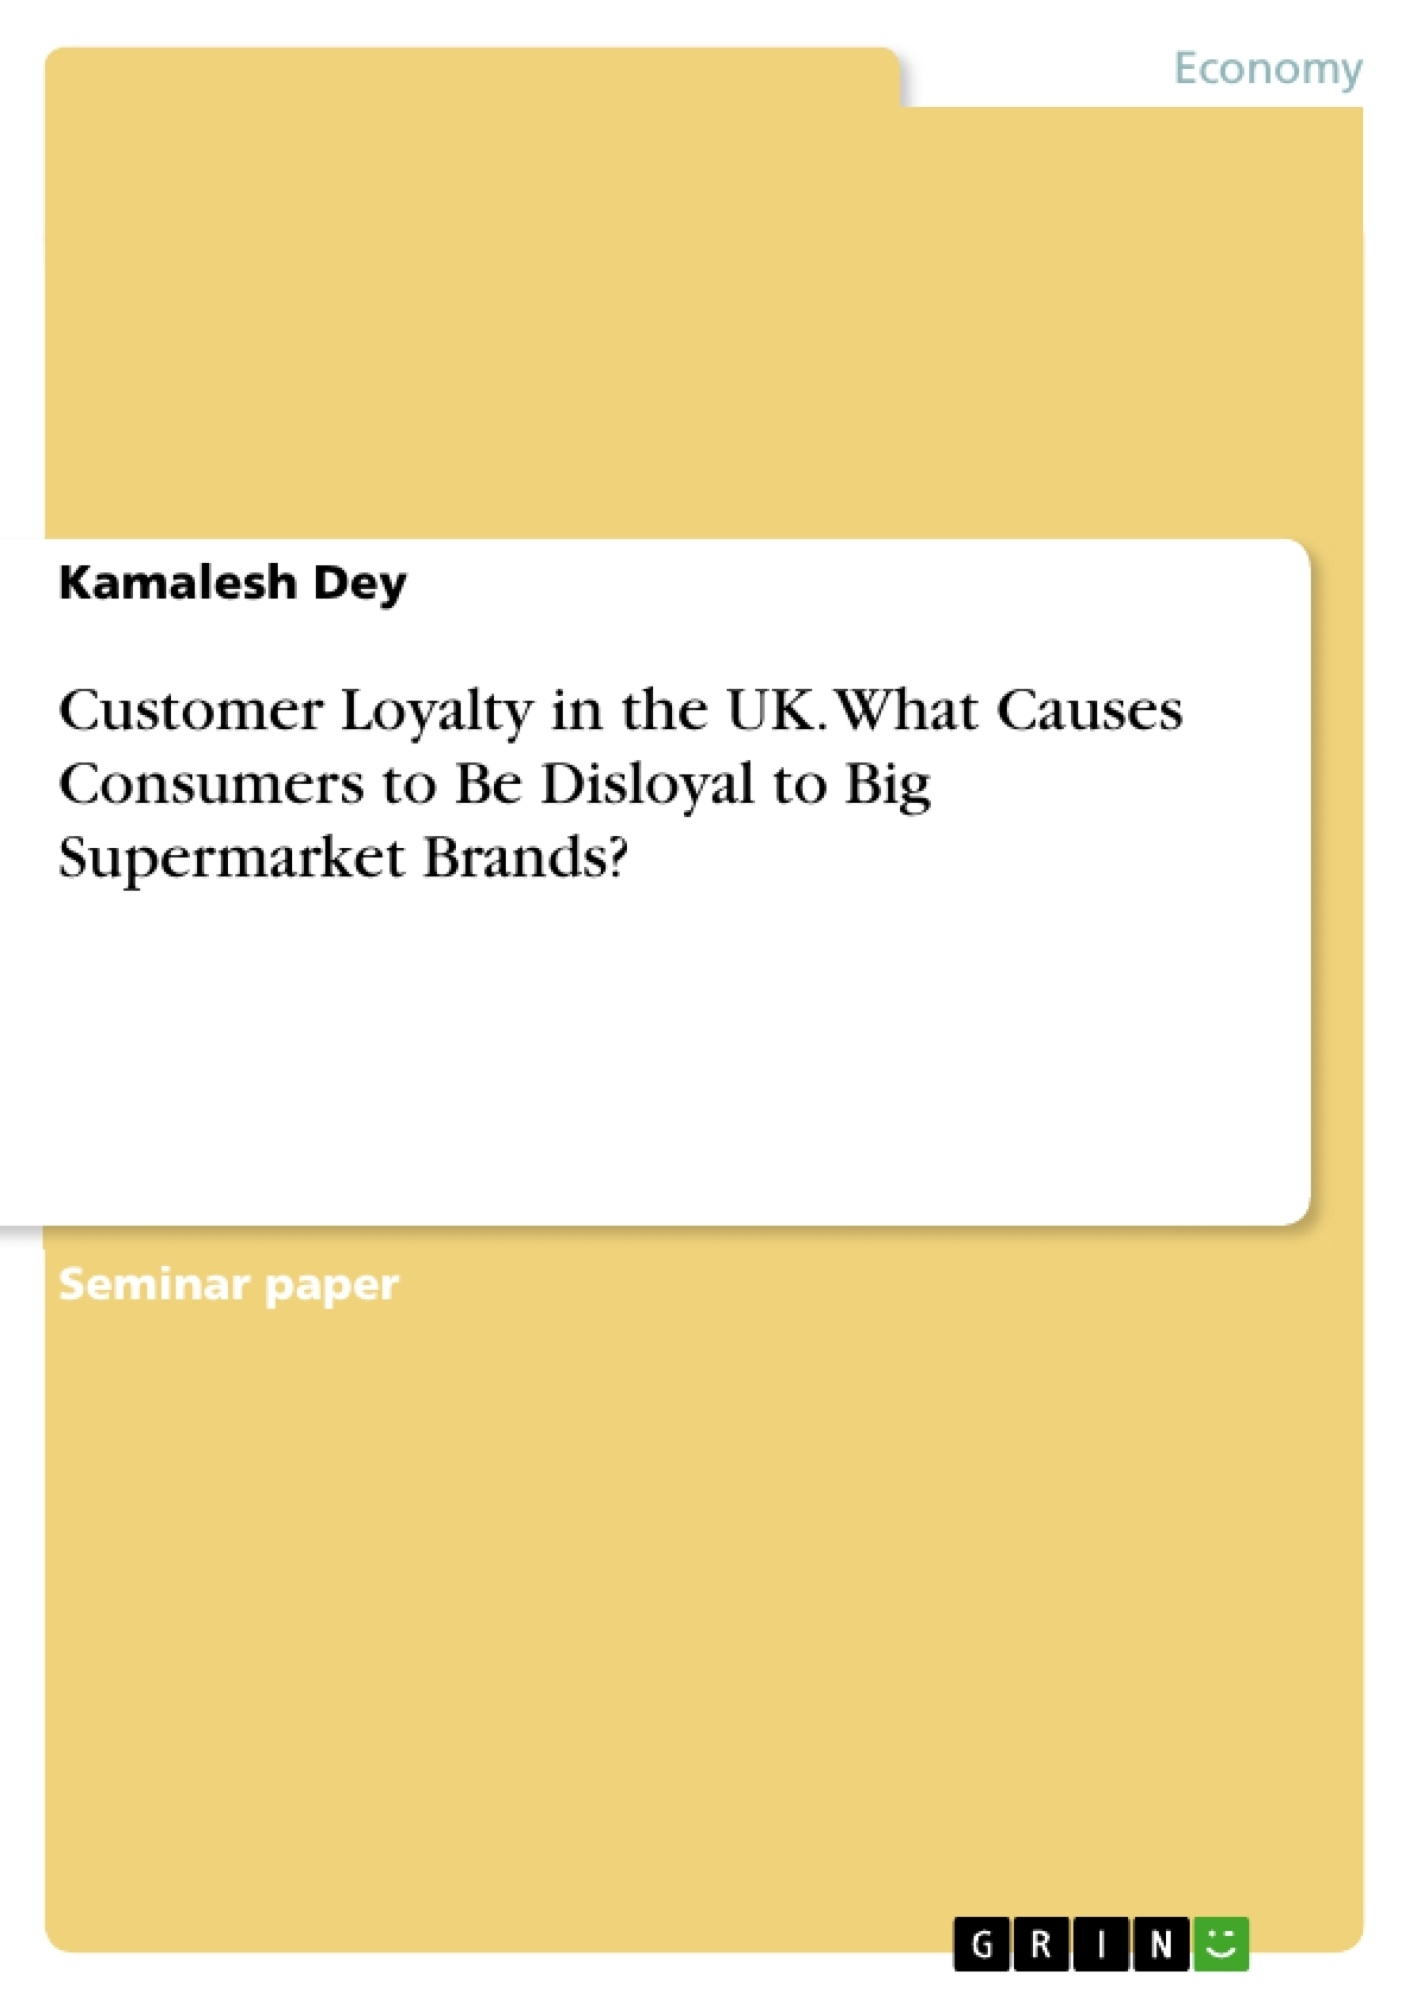 Title: Customer Loyalty in the UK. What Causes Consumers to Be Disloyal to Big Supermarket Brands?